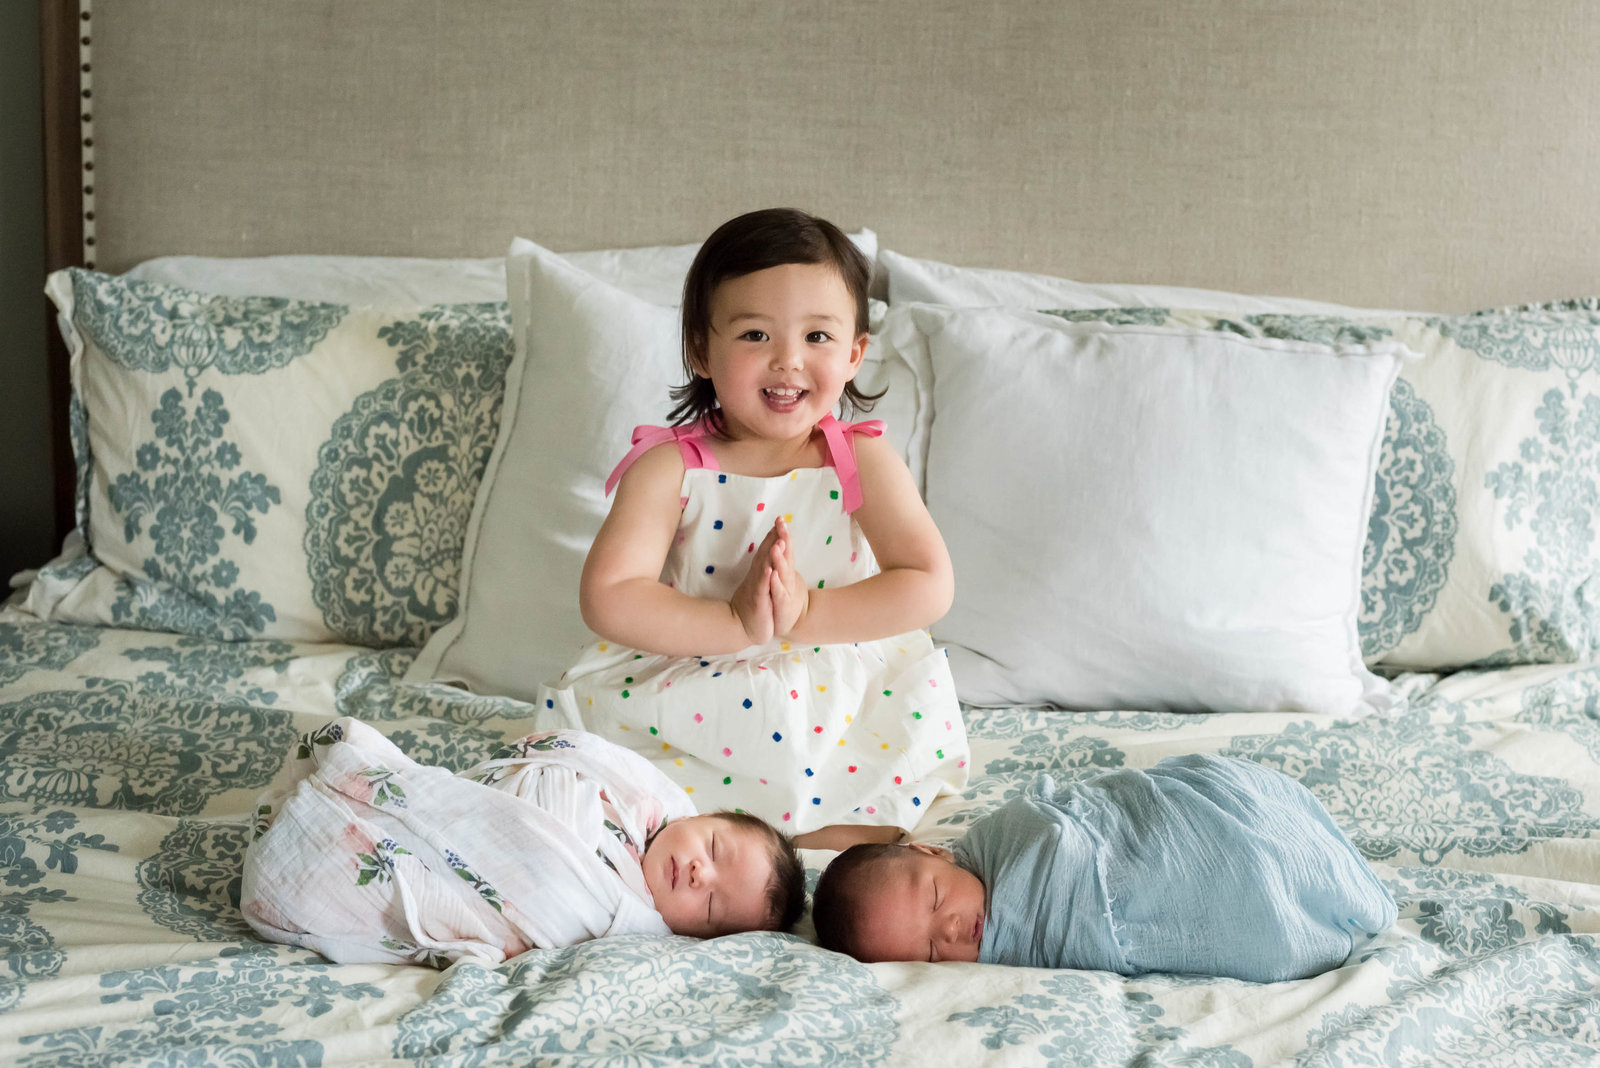 Boston-Newborn-Photographer-Lifestyle-Documentary-Home-Styled-Session-363